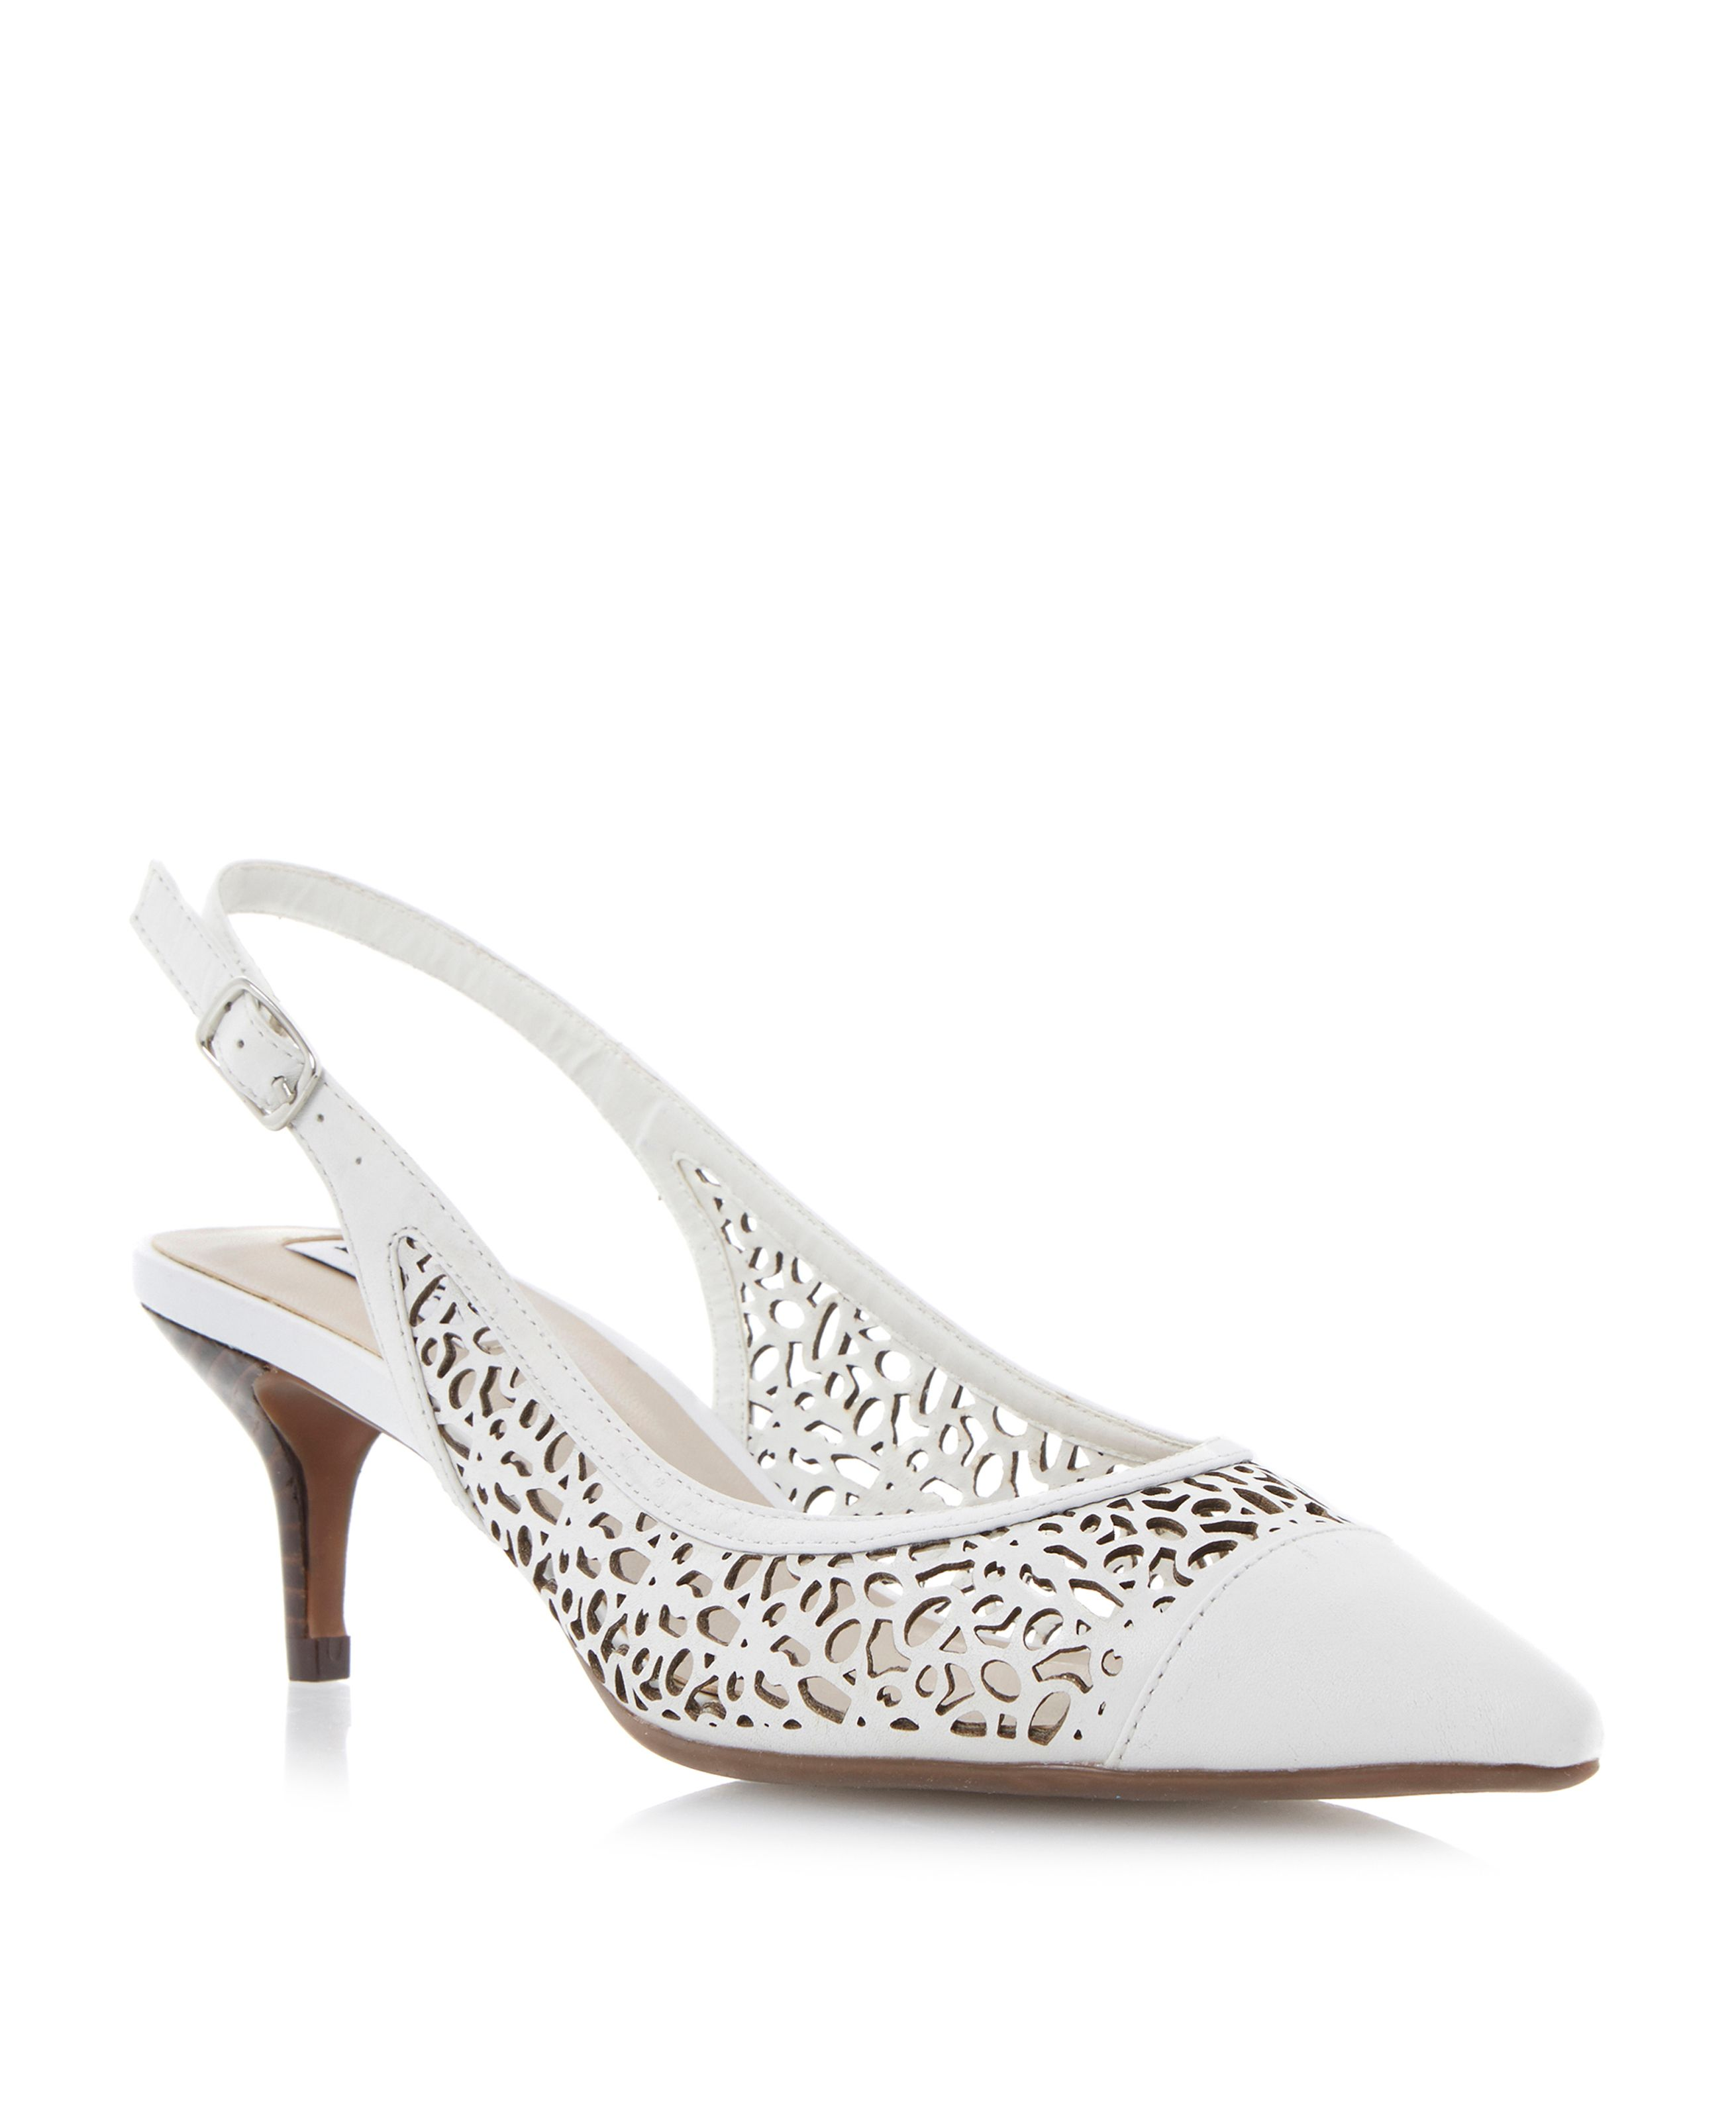 Cora leather pointed stiletto laser court shoes